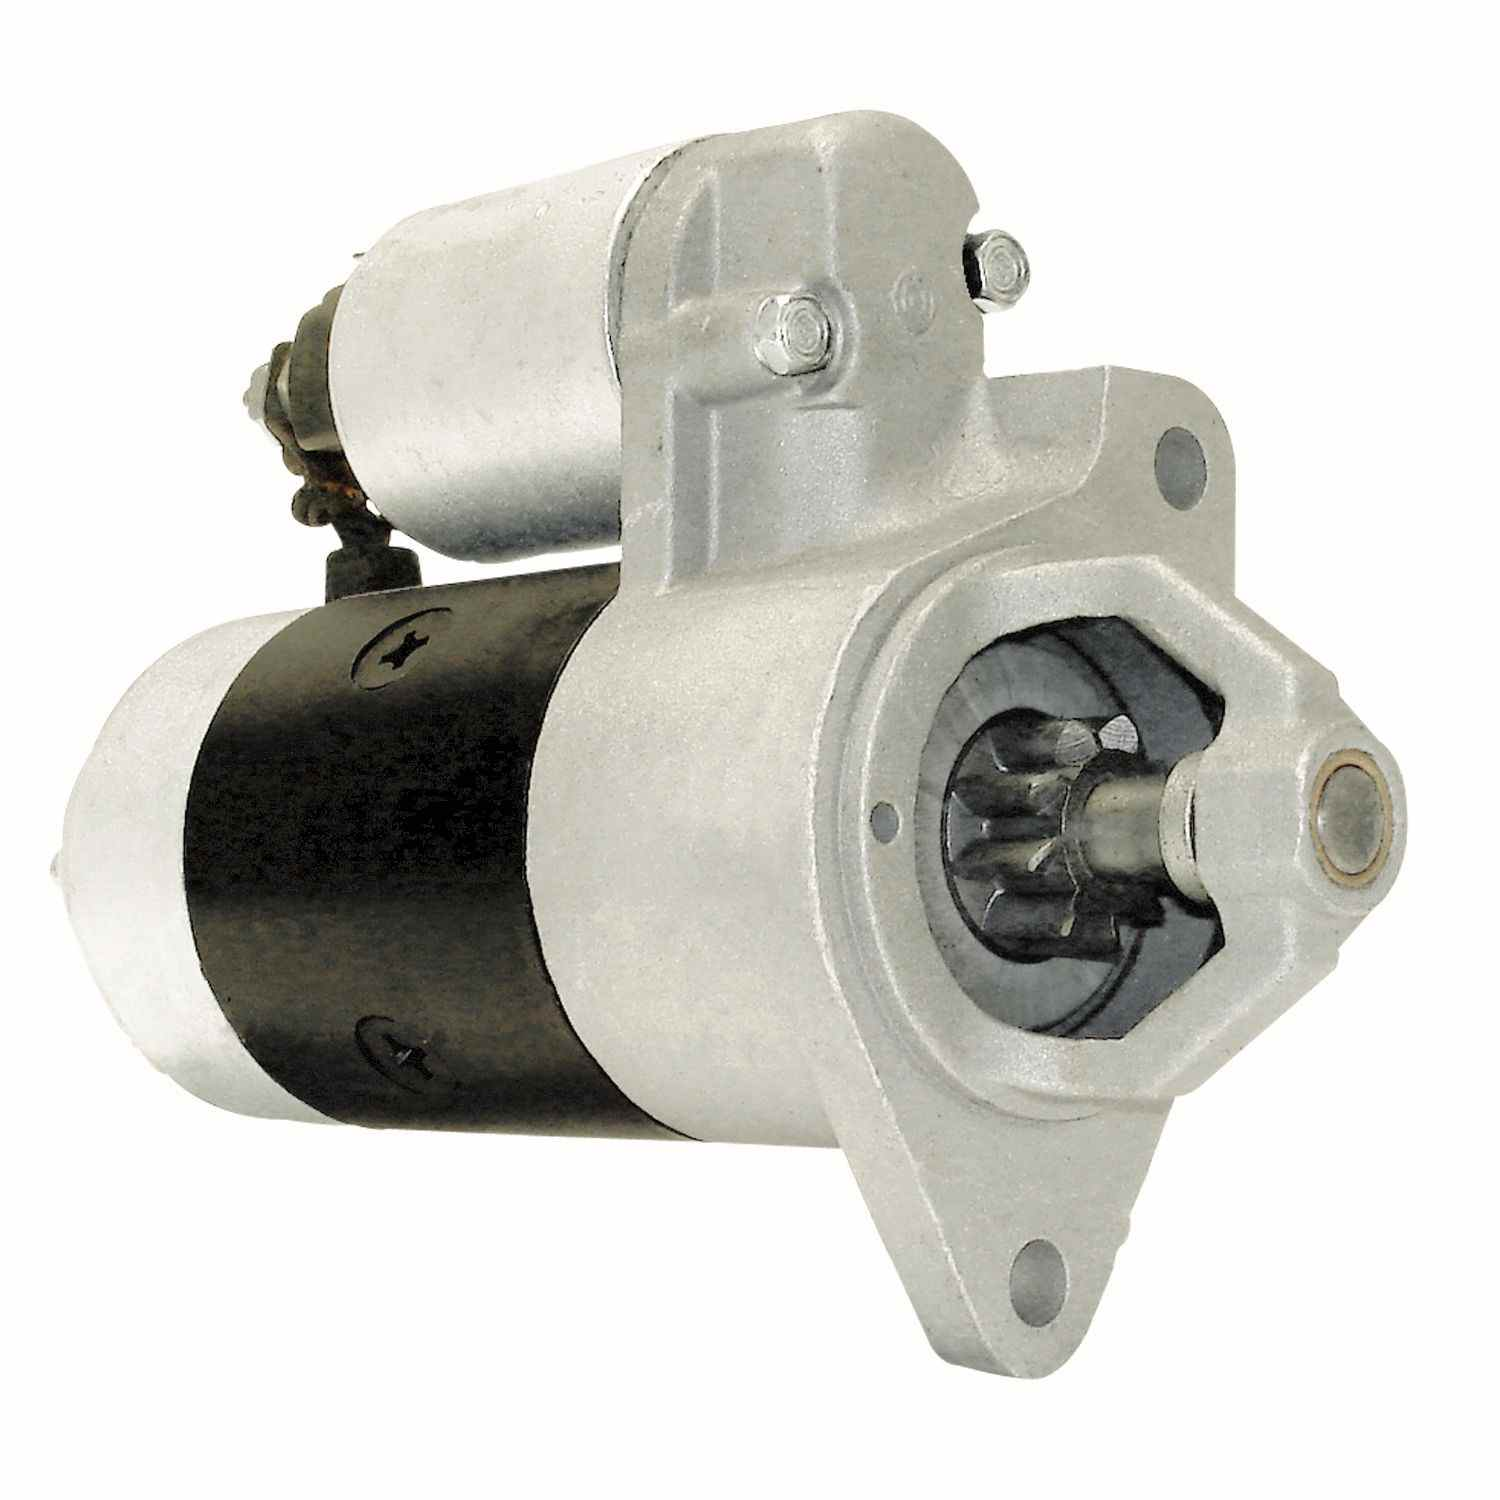 ACDELCO GOLD/PROFESSIONAL - Reman Starter Motor - DCC 336-1258